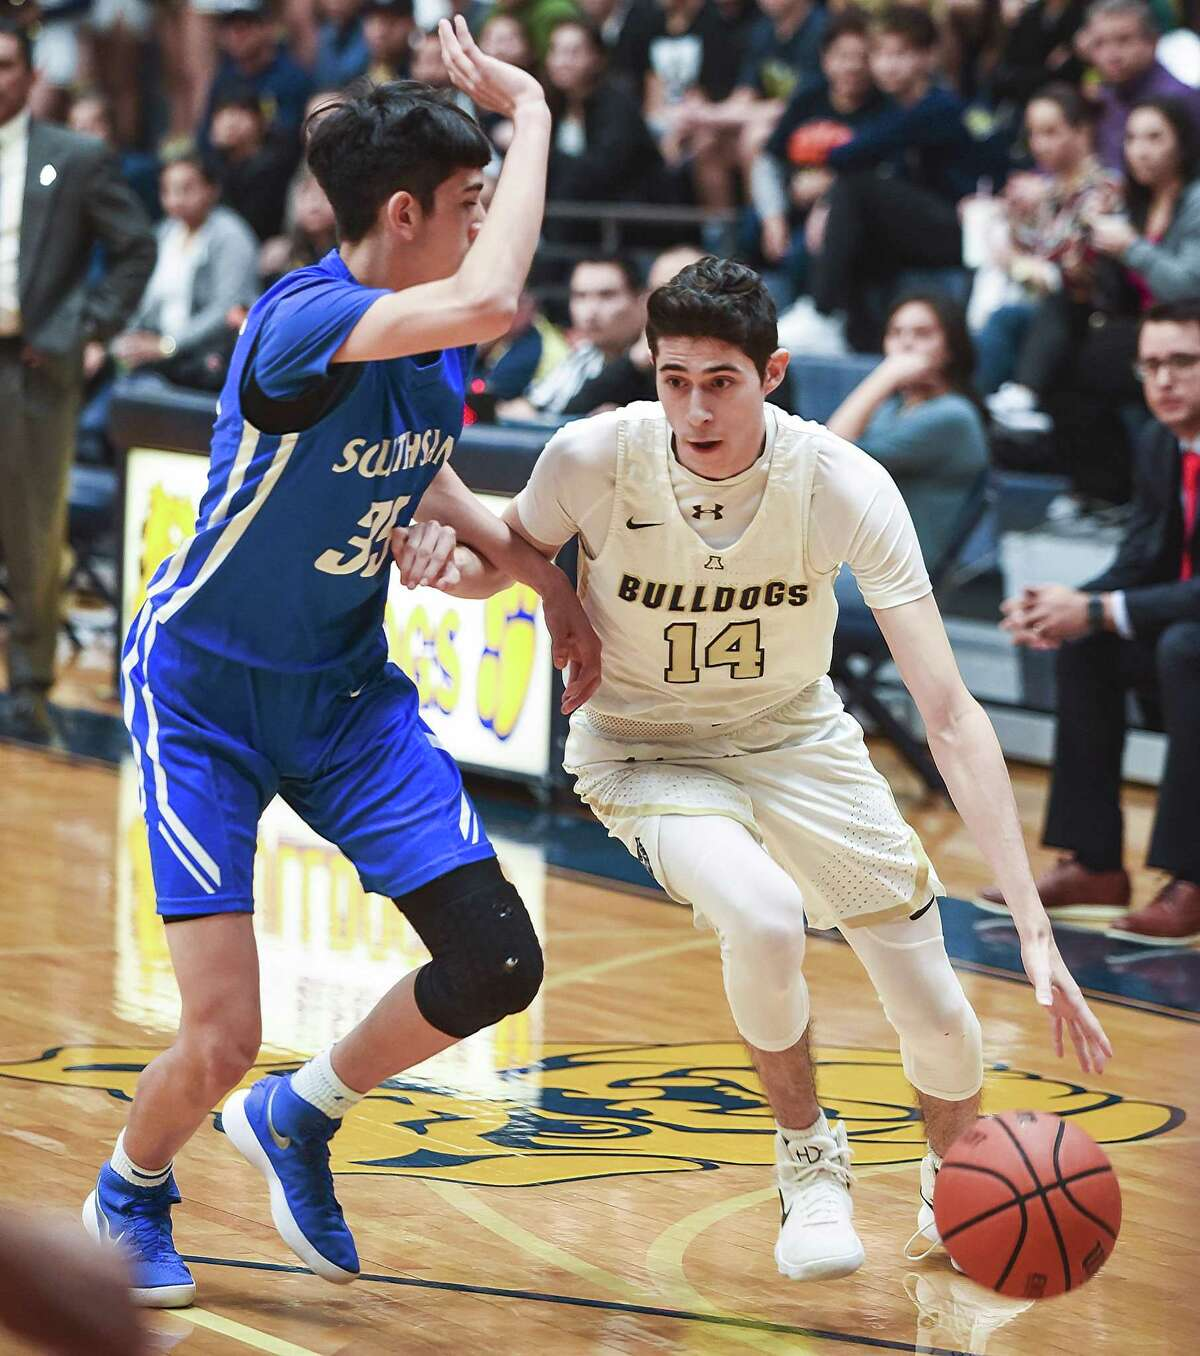 Kike Perez had team highs of 22 points and eight rebounds Tuesday as Alexander fell 66-60 in overtime against South San and dropped into a three-way tie for first place in District 29-6A.